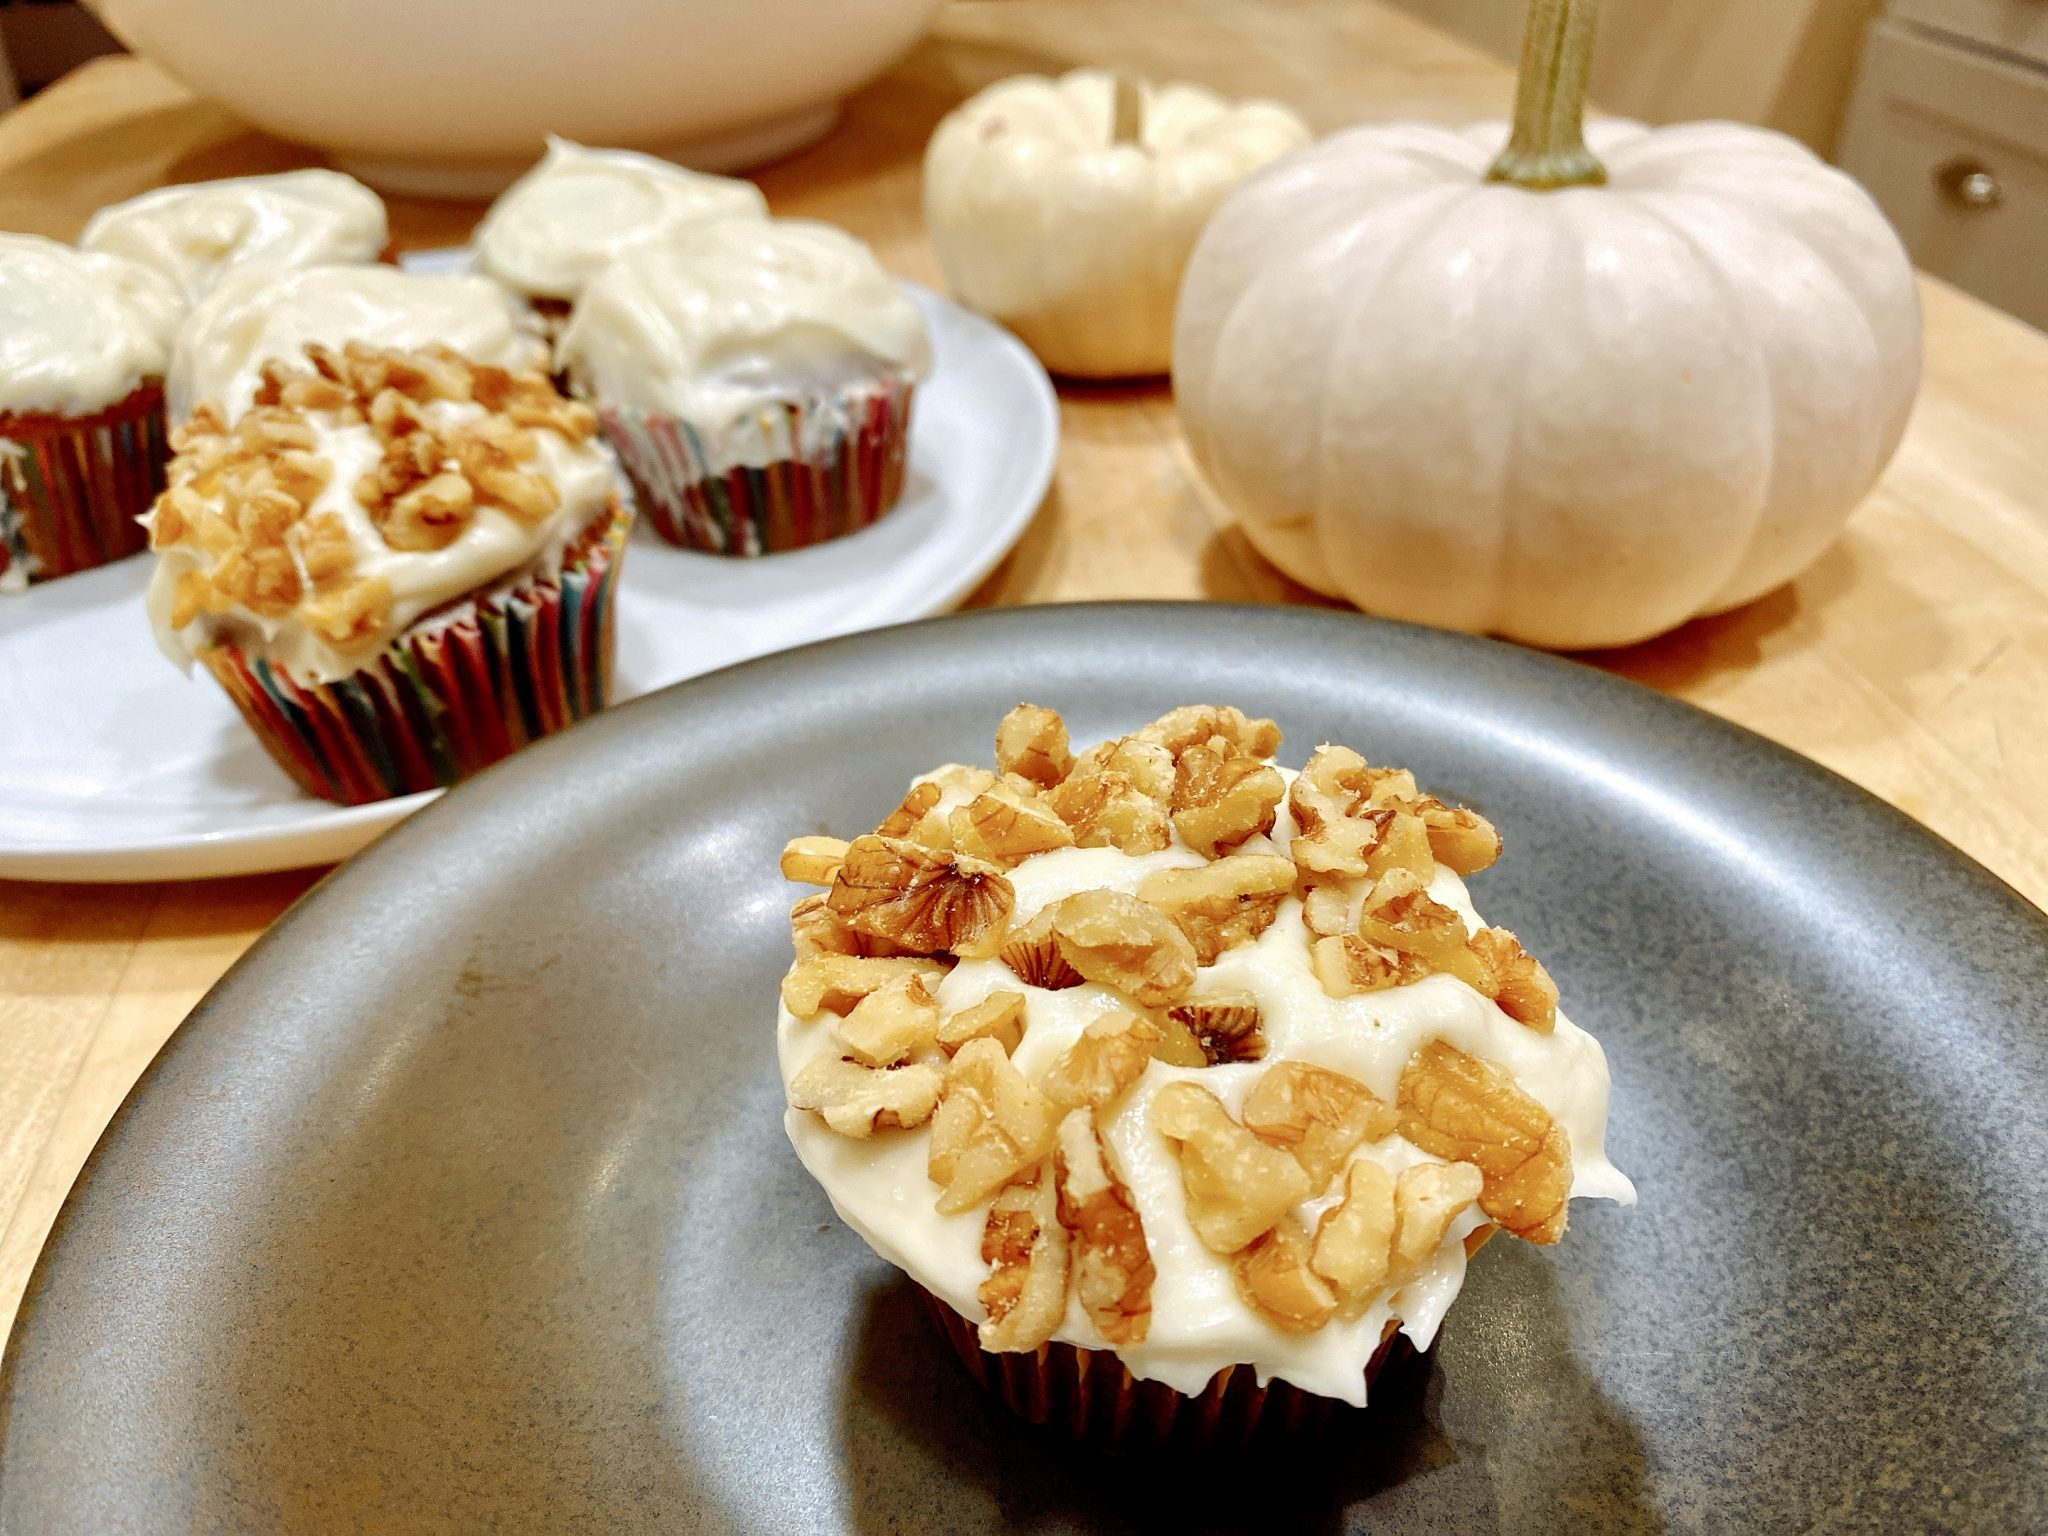 Pumpkin spice cupcake recipe includes cream cheese frosting and chopped walnuts on top.